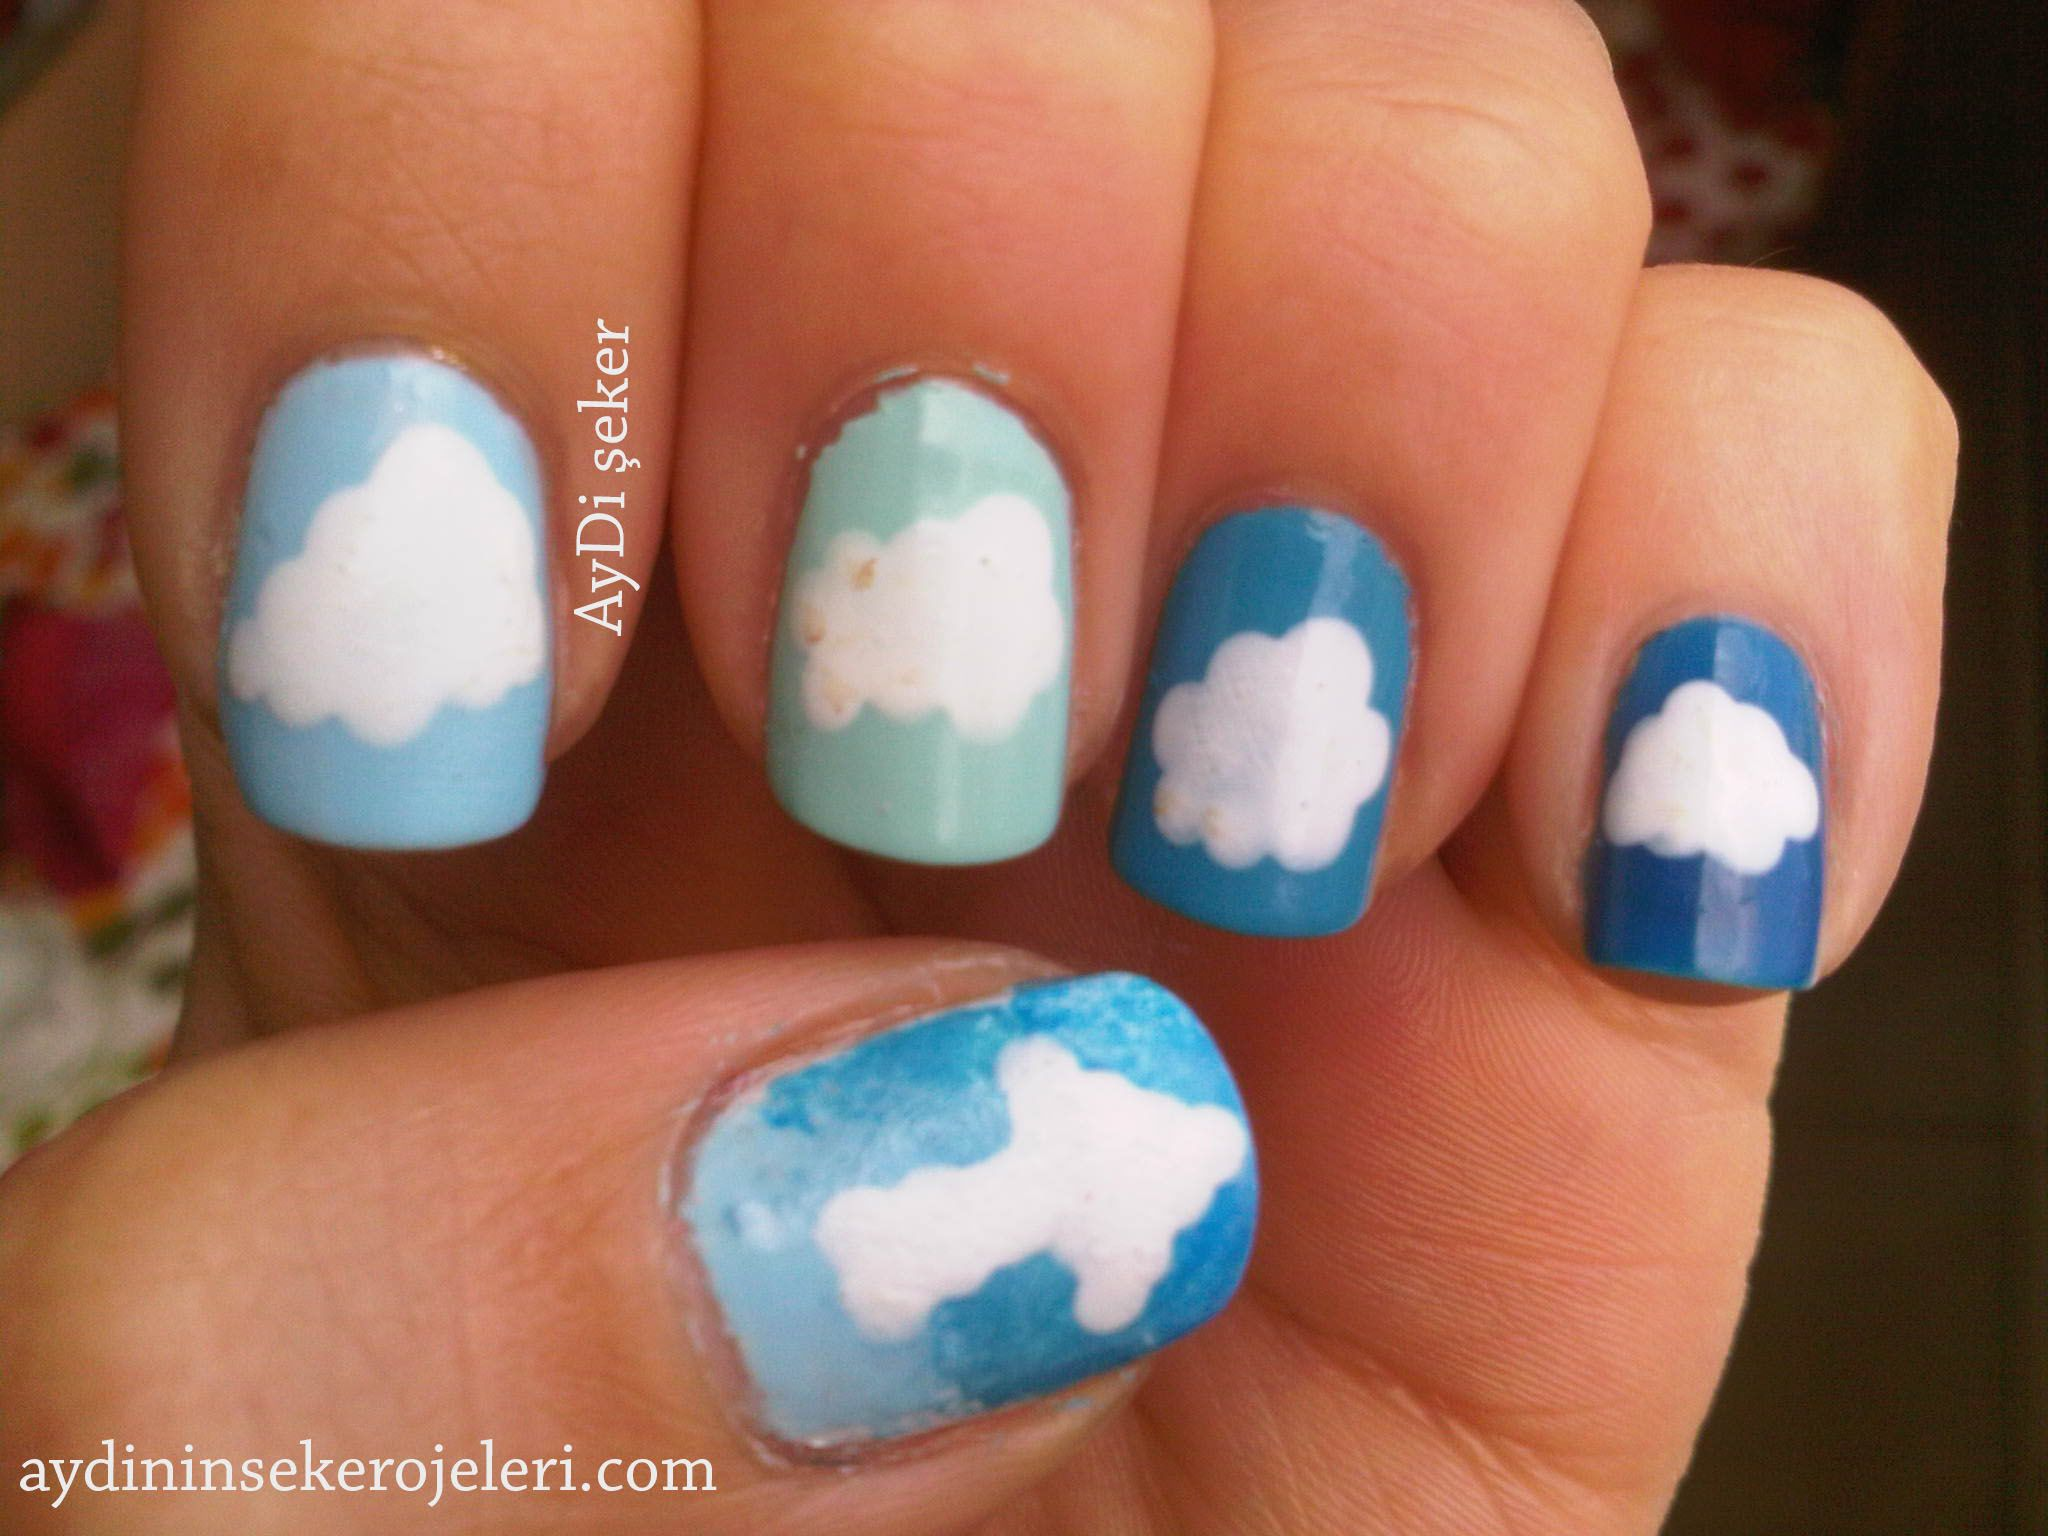 31 day nail art challenge day 22 Inspired by a Song: Jogger - Falling (Up Into the Sky)